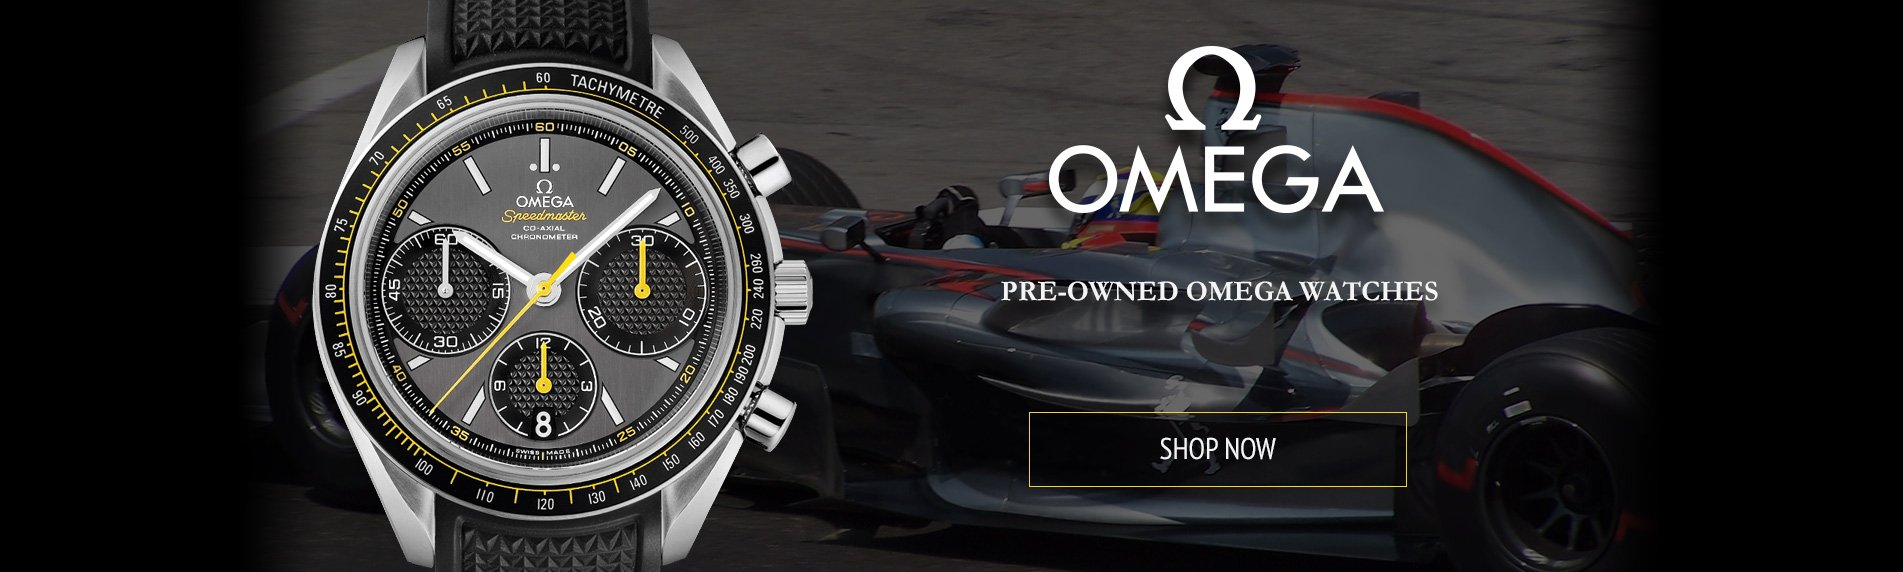 Buy and Sell Pre-owned Omega Watches